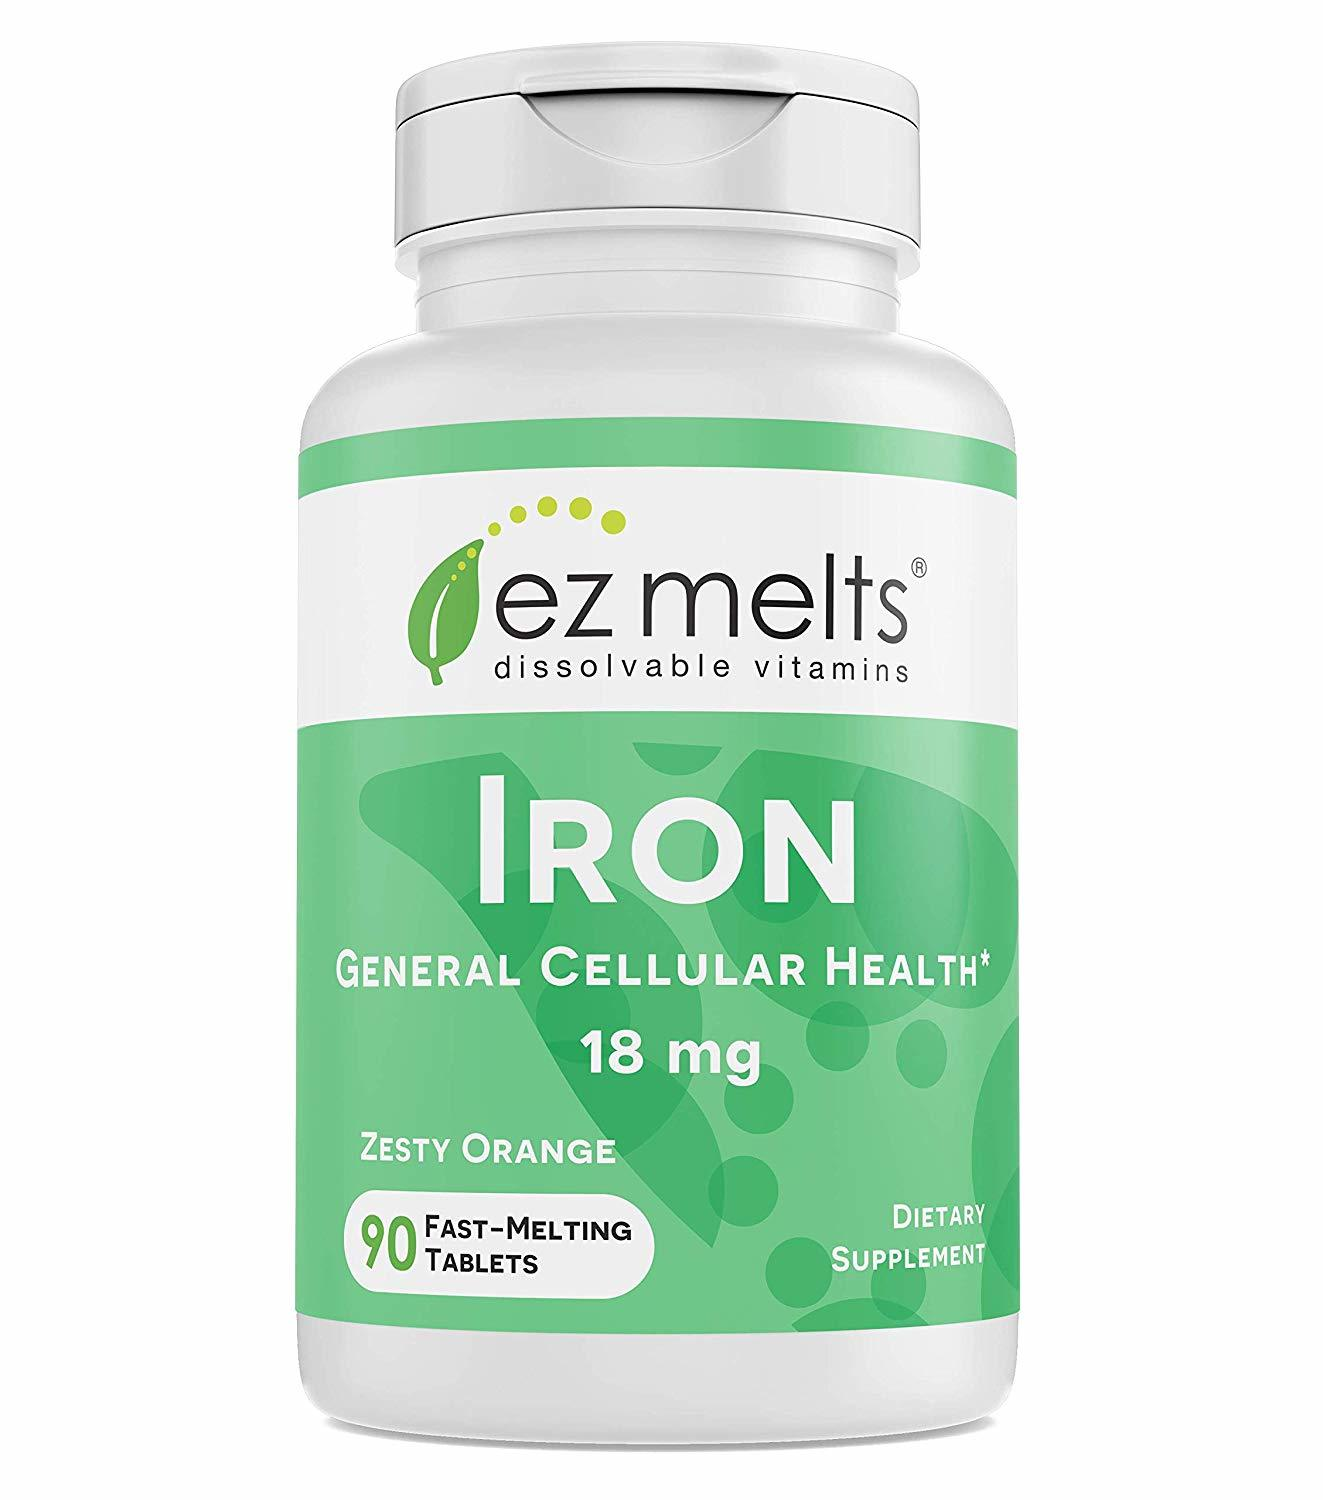 vegan iron supplement